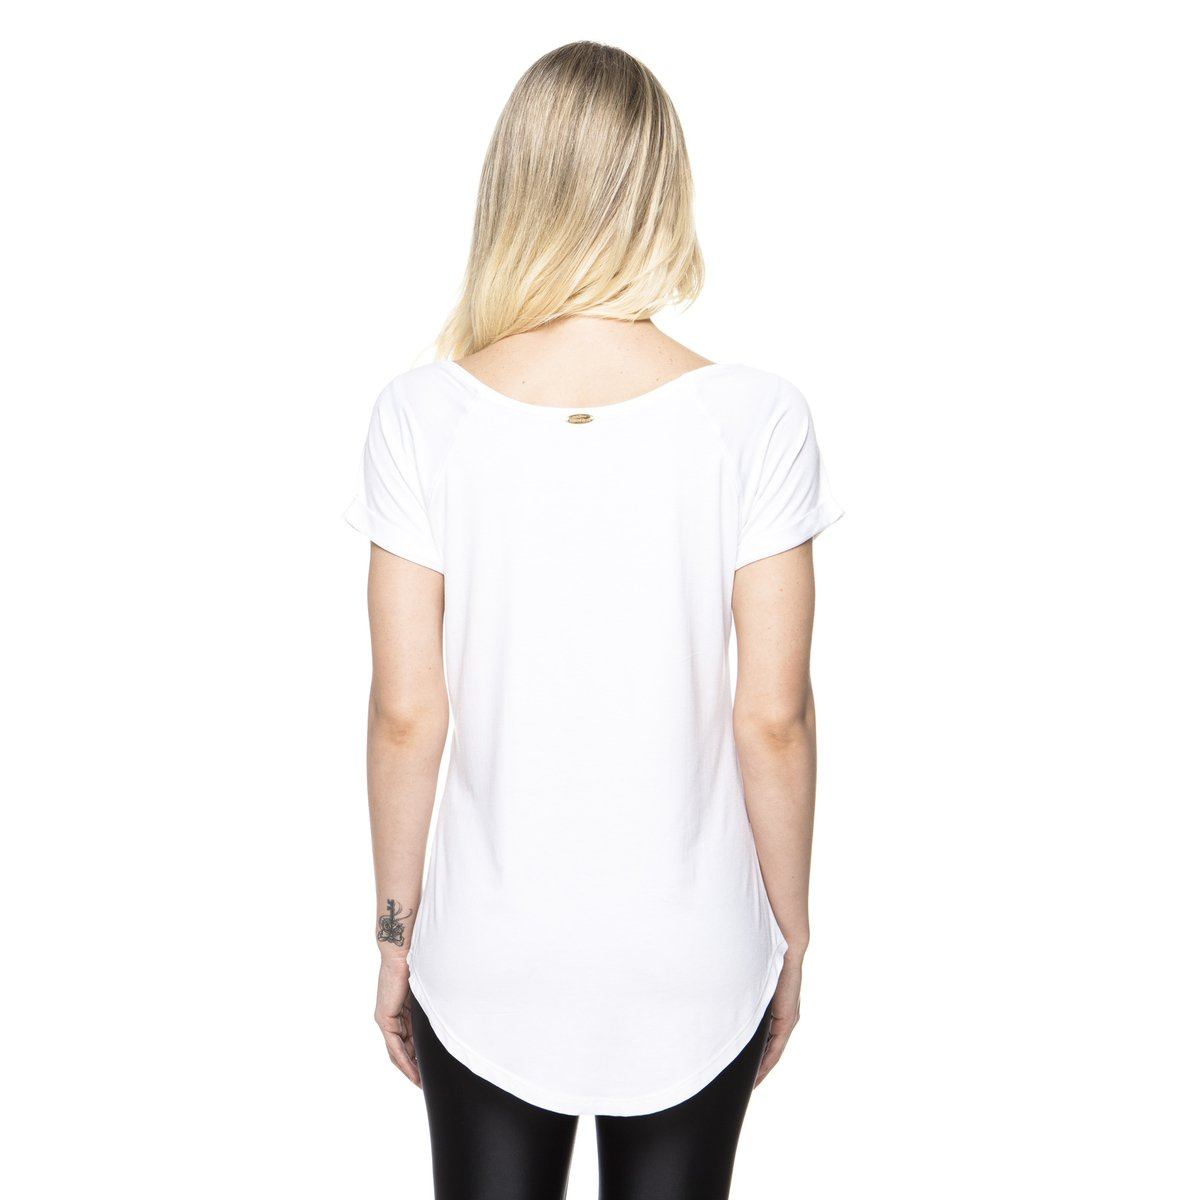 Camiseta Camiseta New Pocket Up Vis New Pocket Branco PxwqqEd1